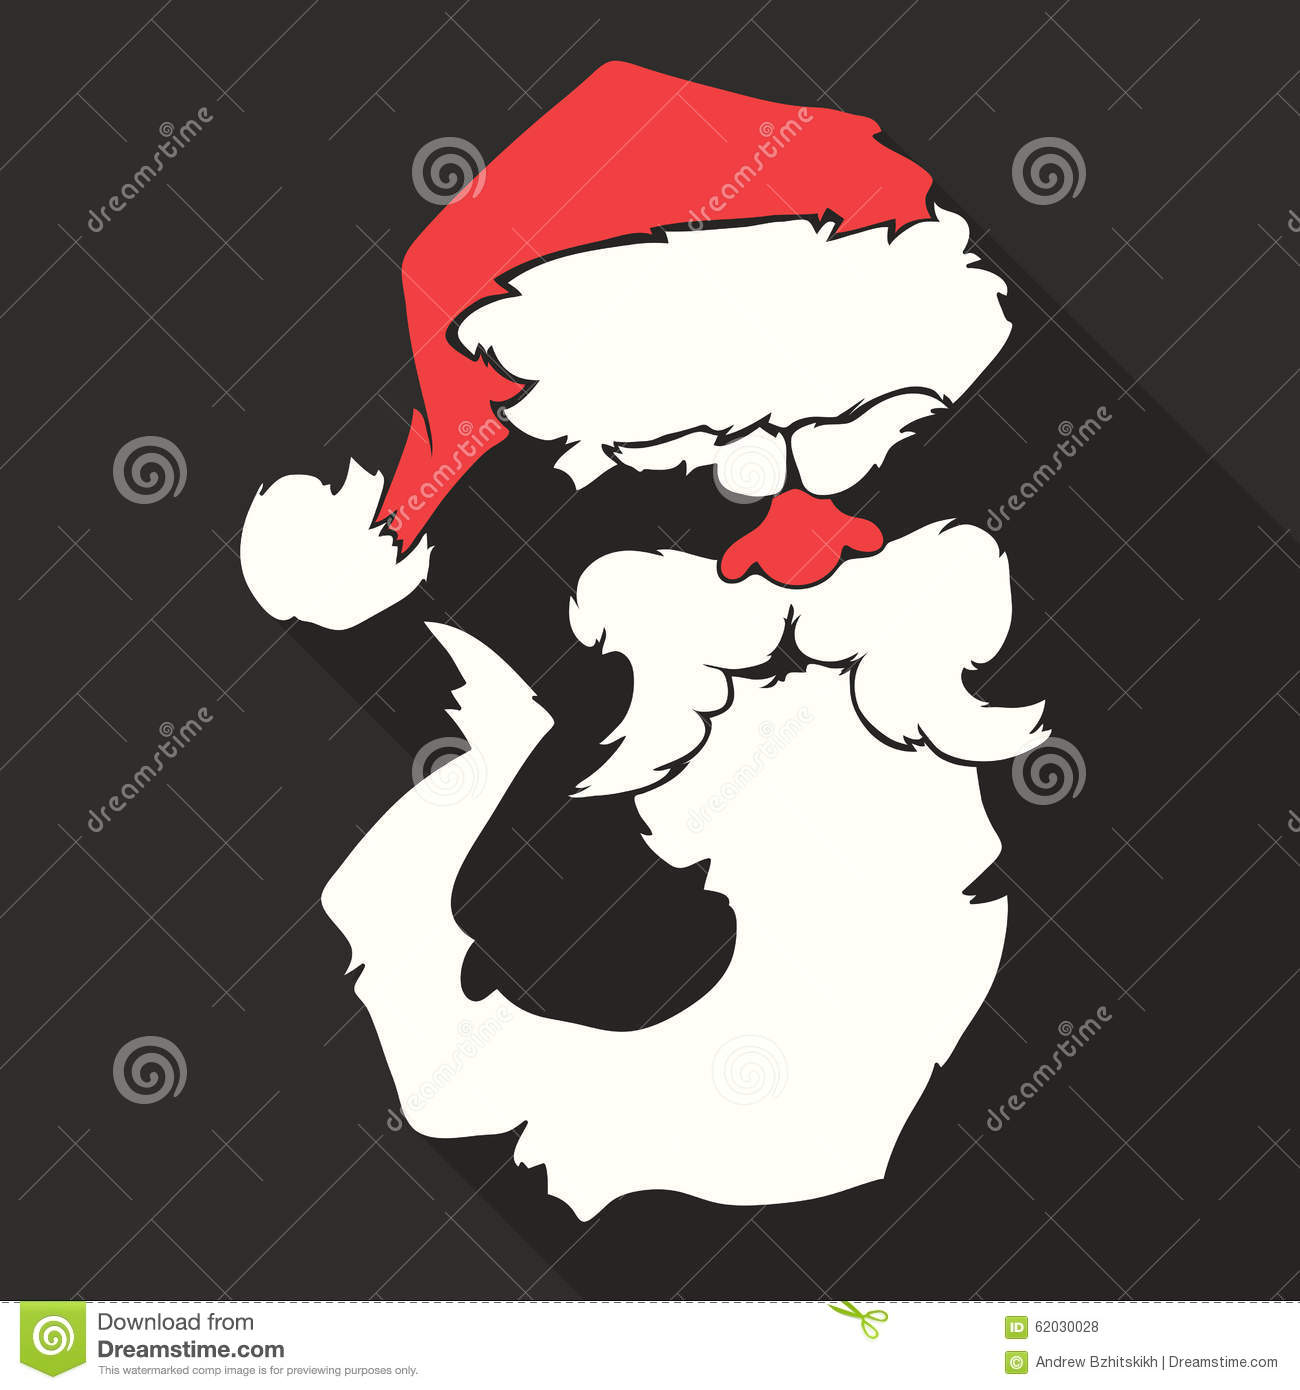 3ad563068ec Flat Design Vector Santa Claus Face. Hat and beard. Christmas icons with  long shadow. Retro. Great for avatar and greeting cards